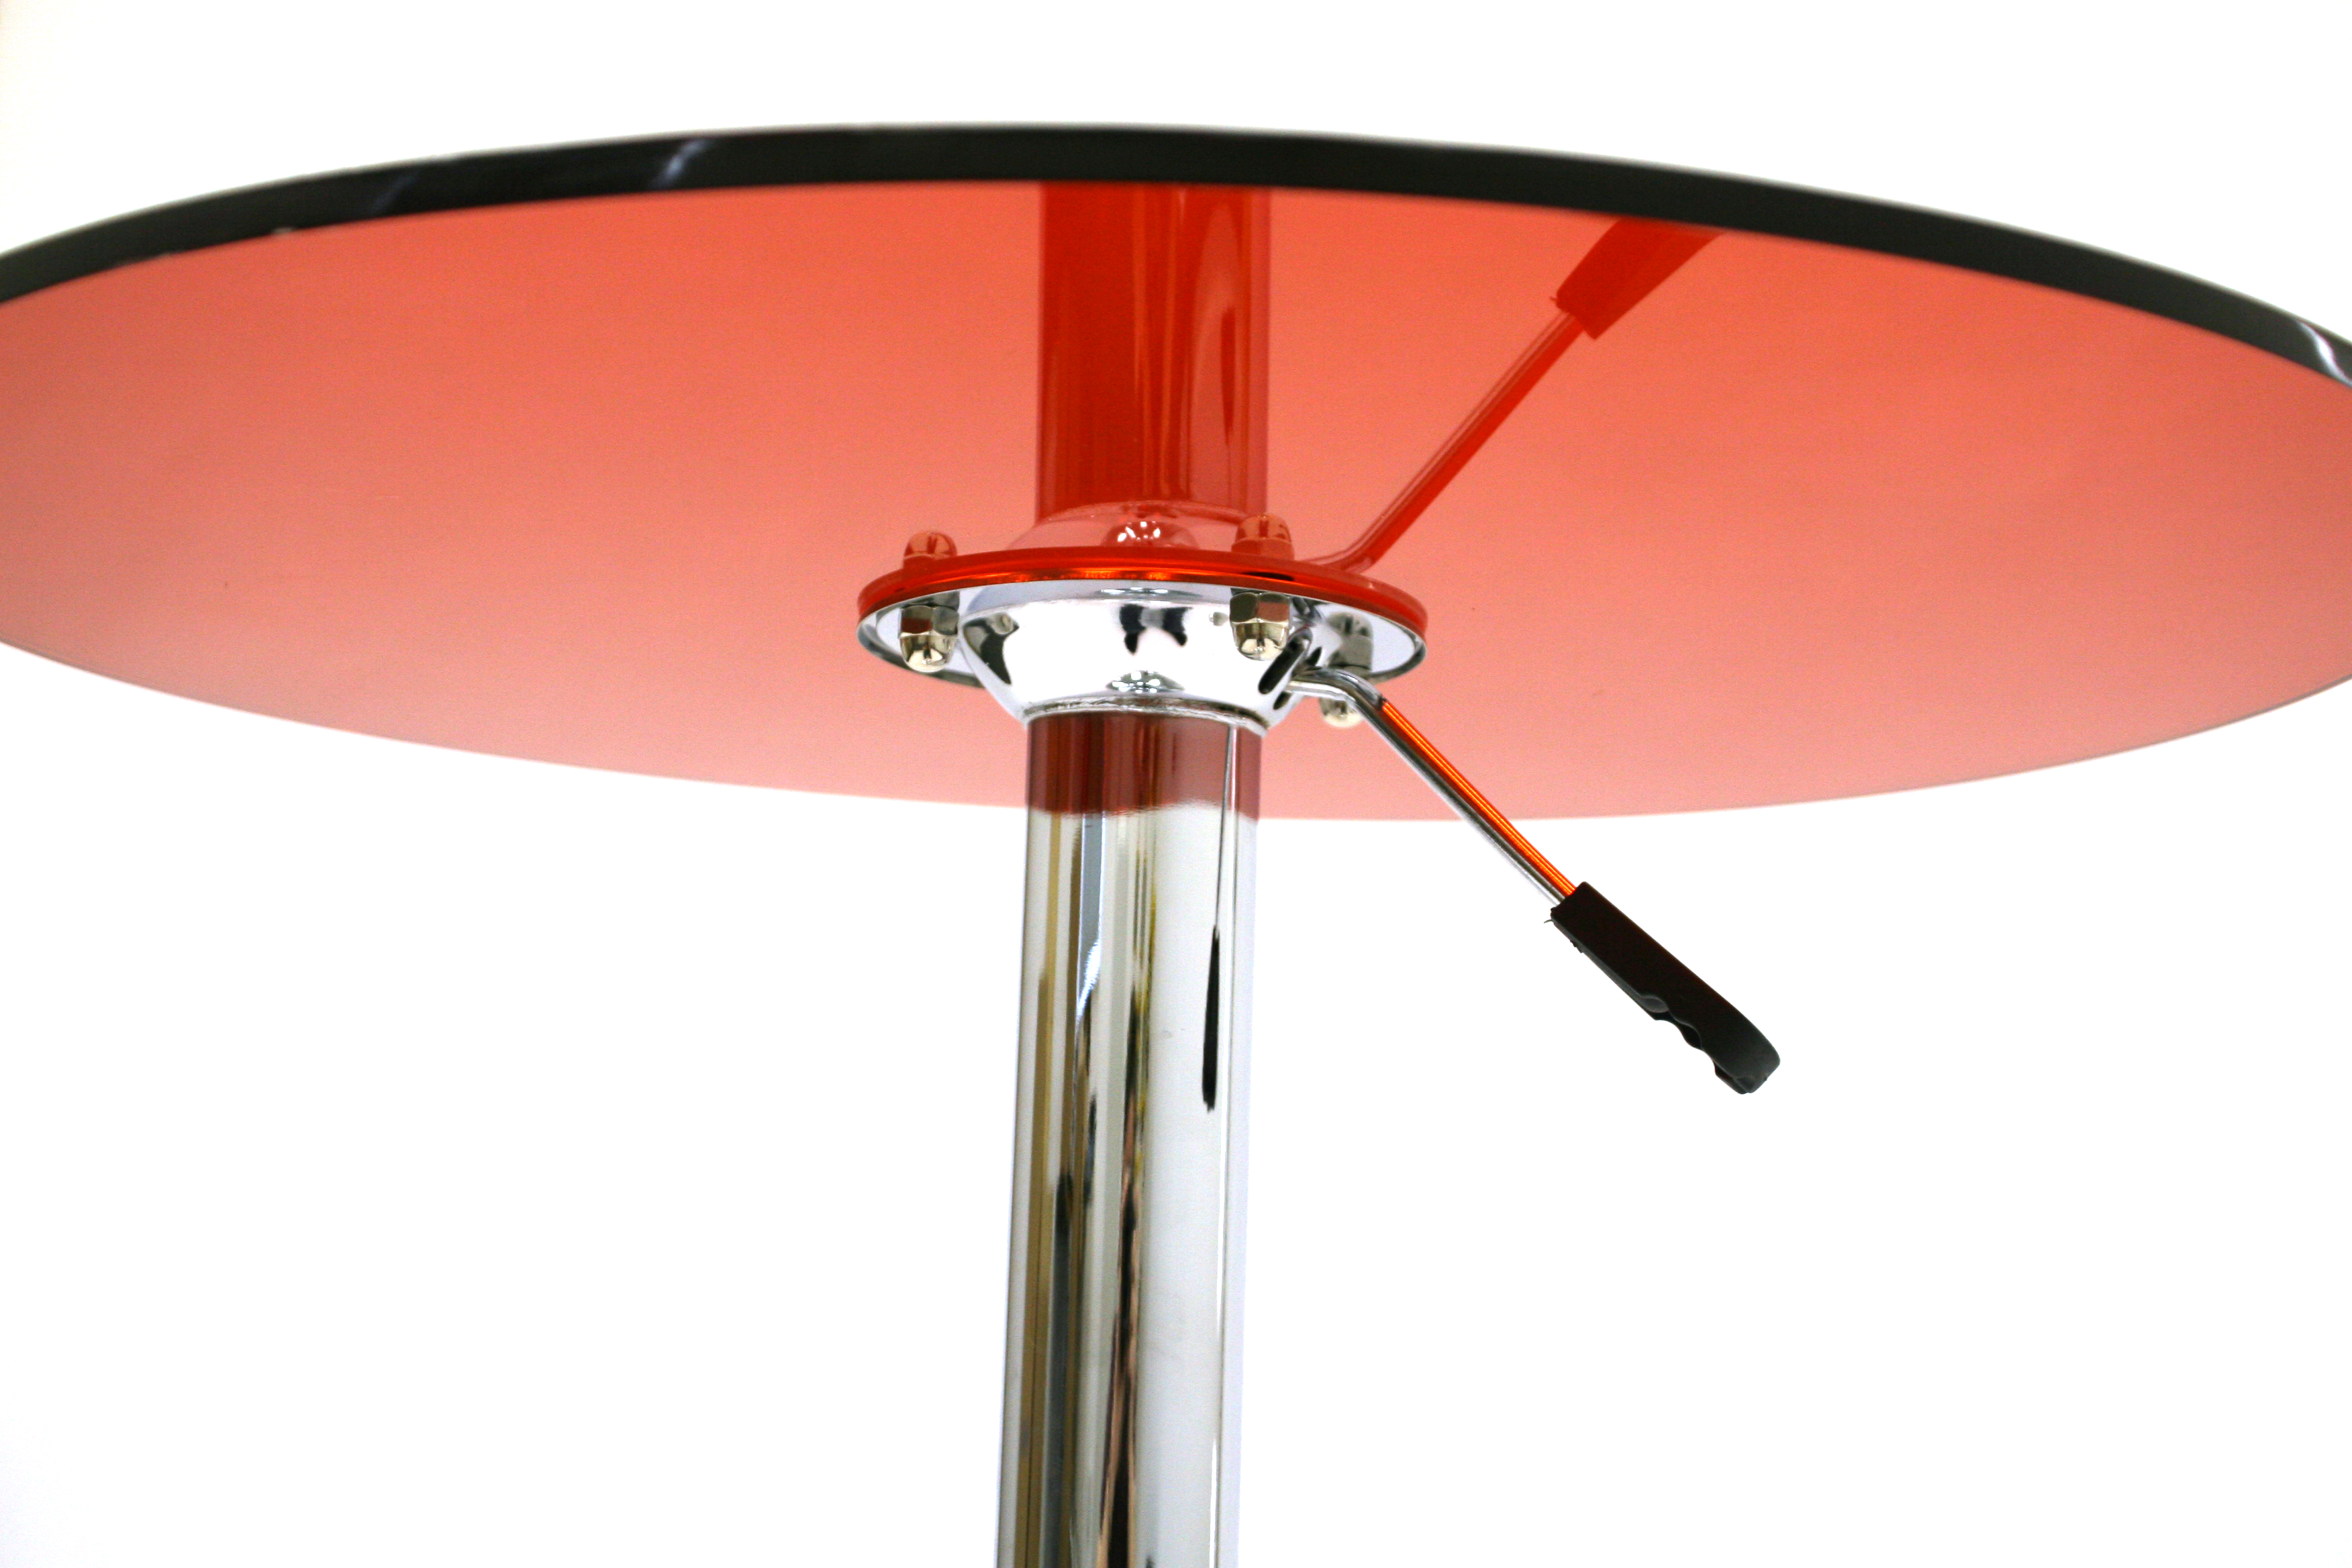 Red 60 cm diameter red acrylic swivel gas lift table with a chrome metal base - BE Event Hire